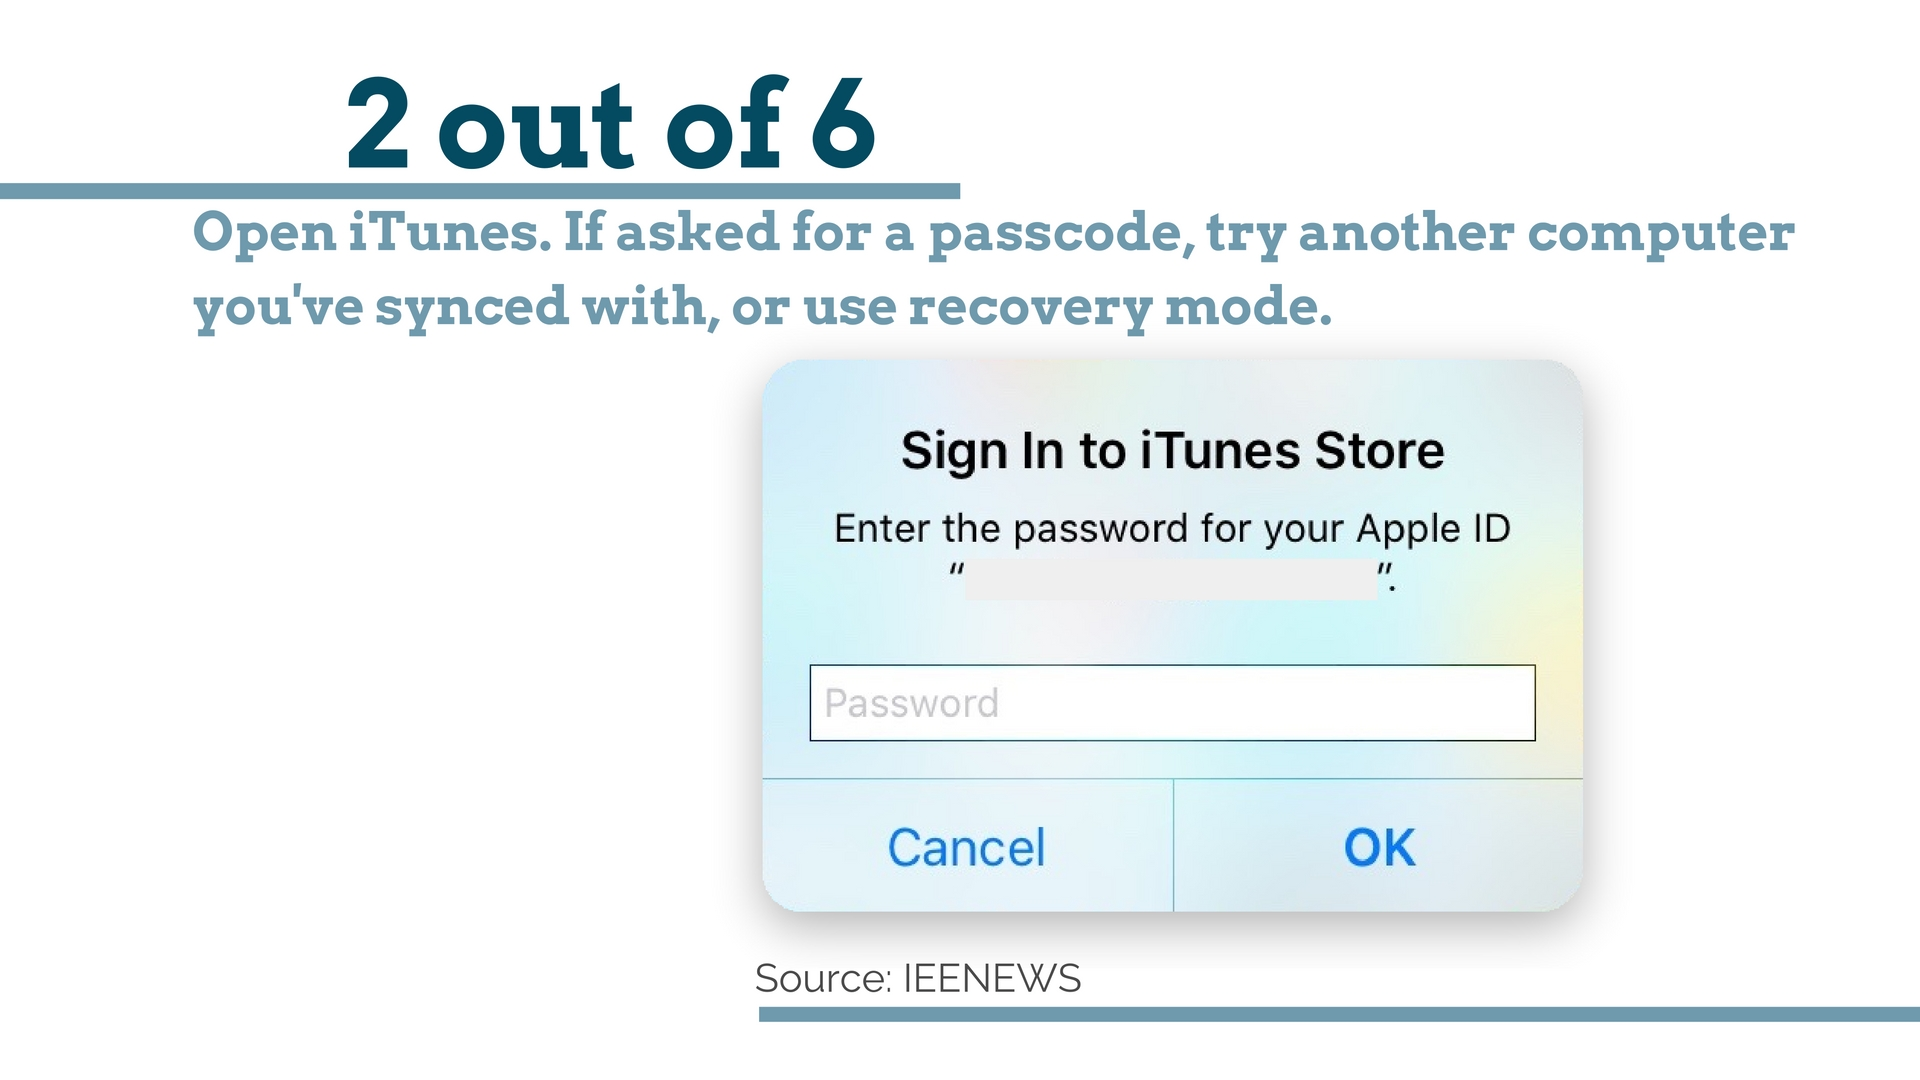 Open iTunes: How to Bypass iPhone 4 passcode Using iCloud